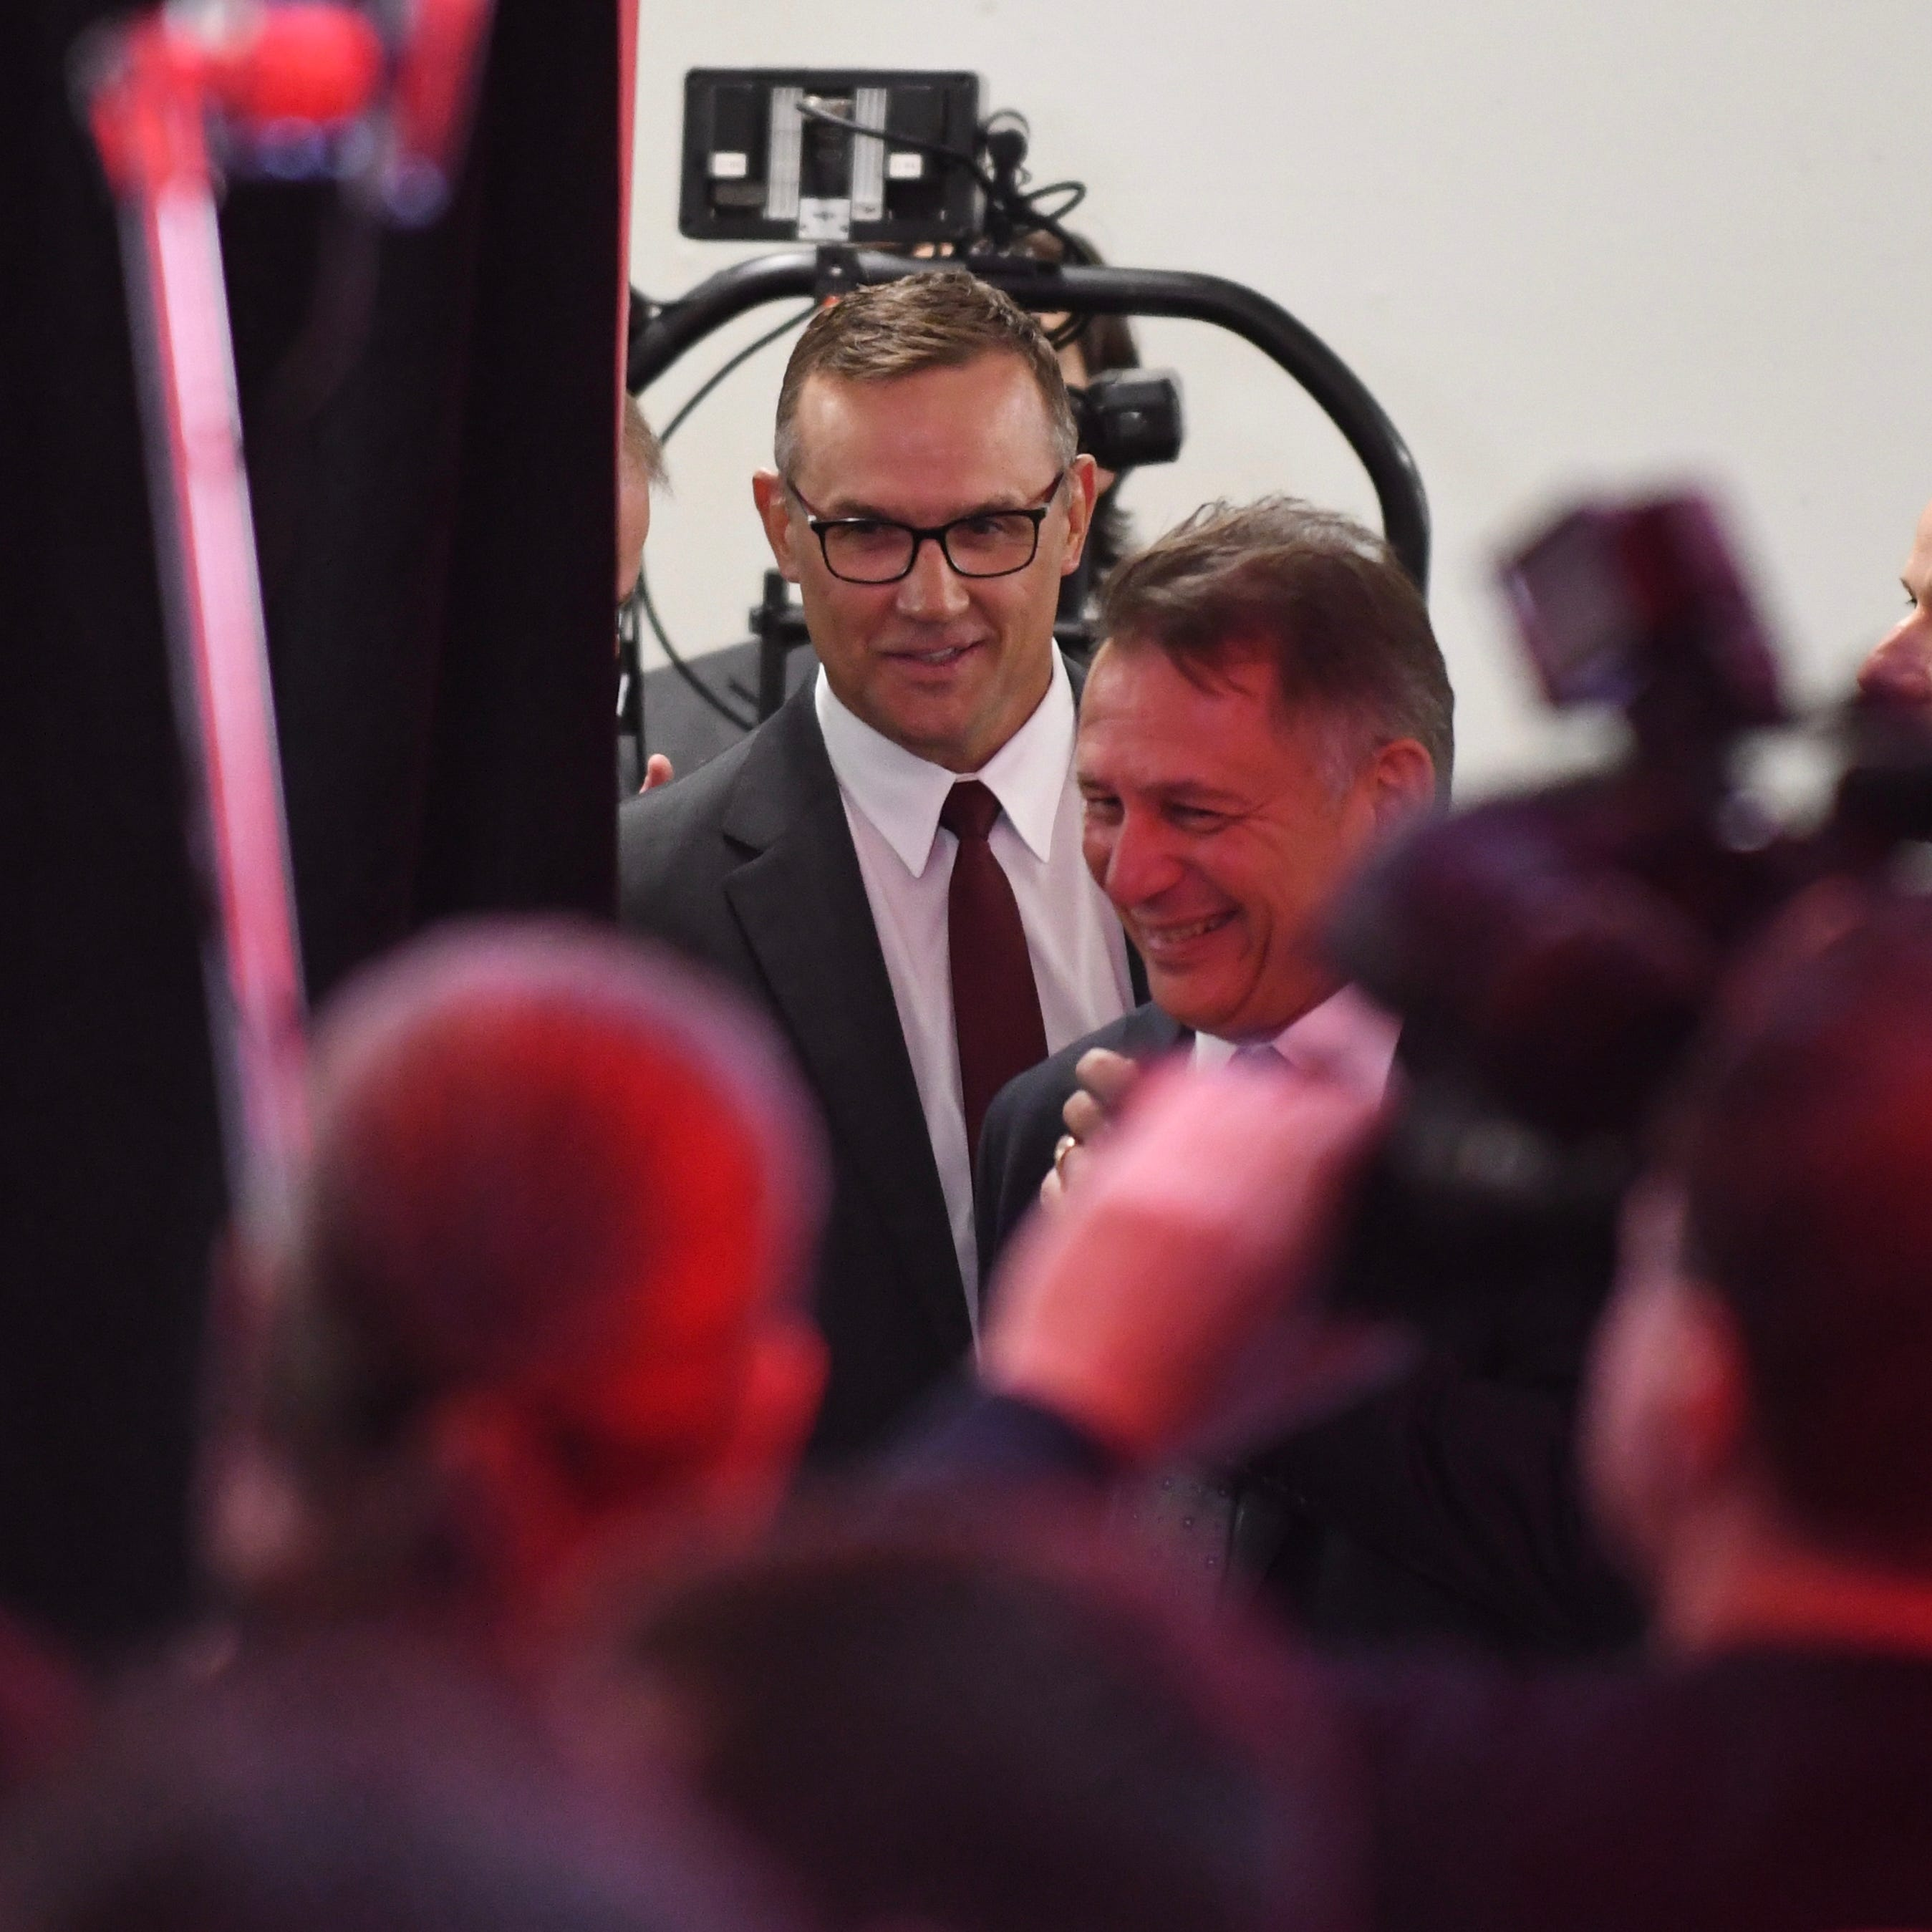 Red Wings introduce Steve Yzerman as GM: 'There's a lot of work to be done'